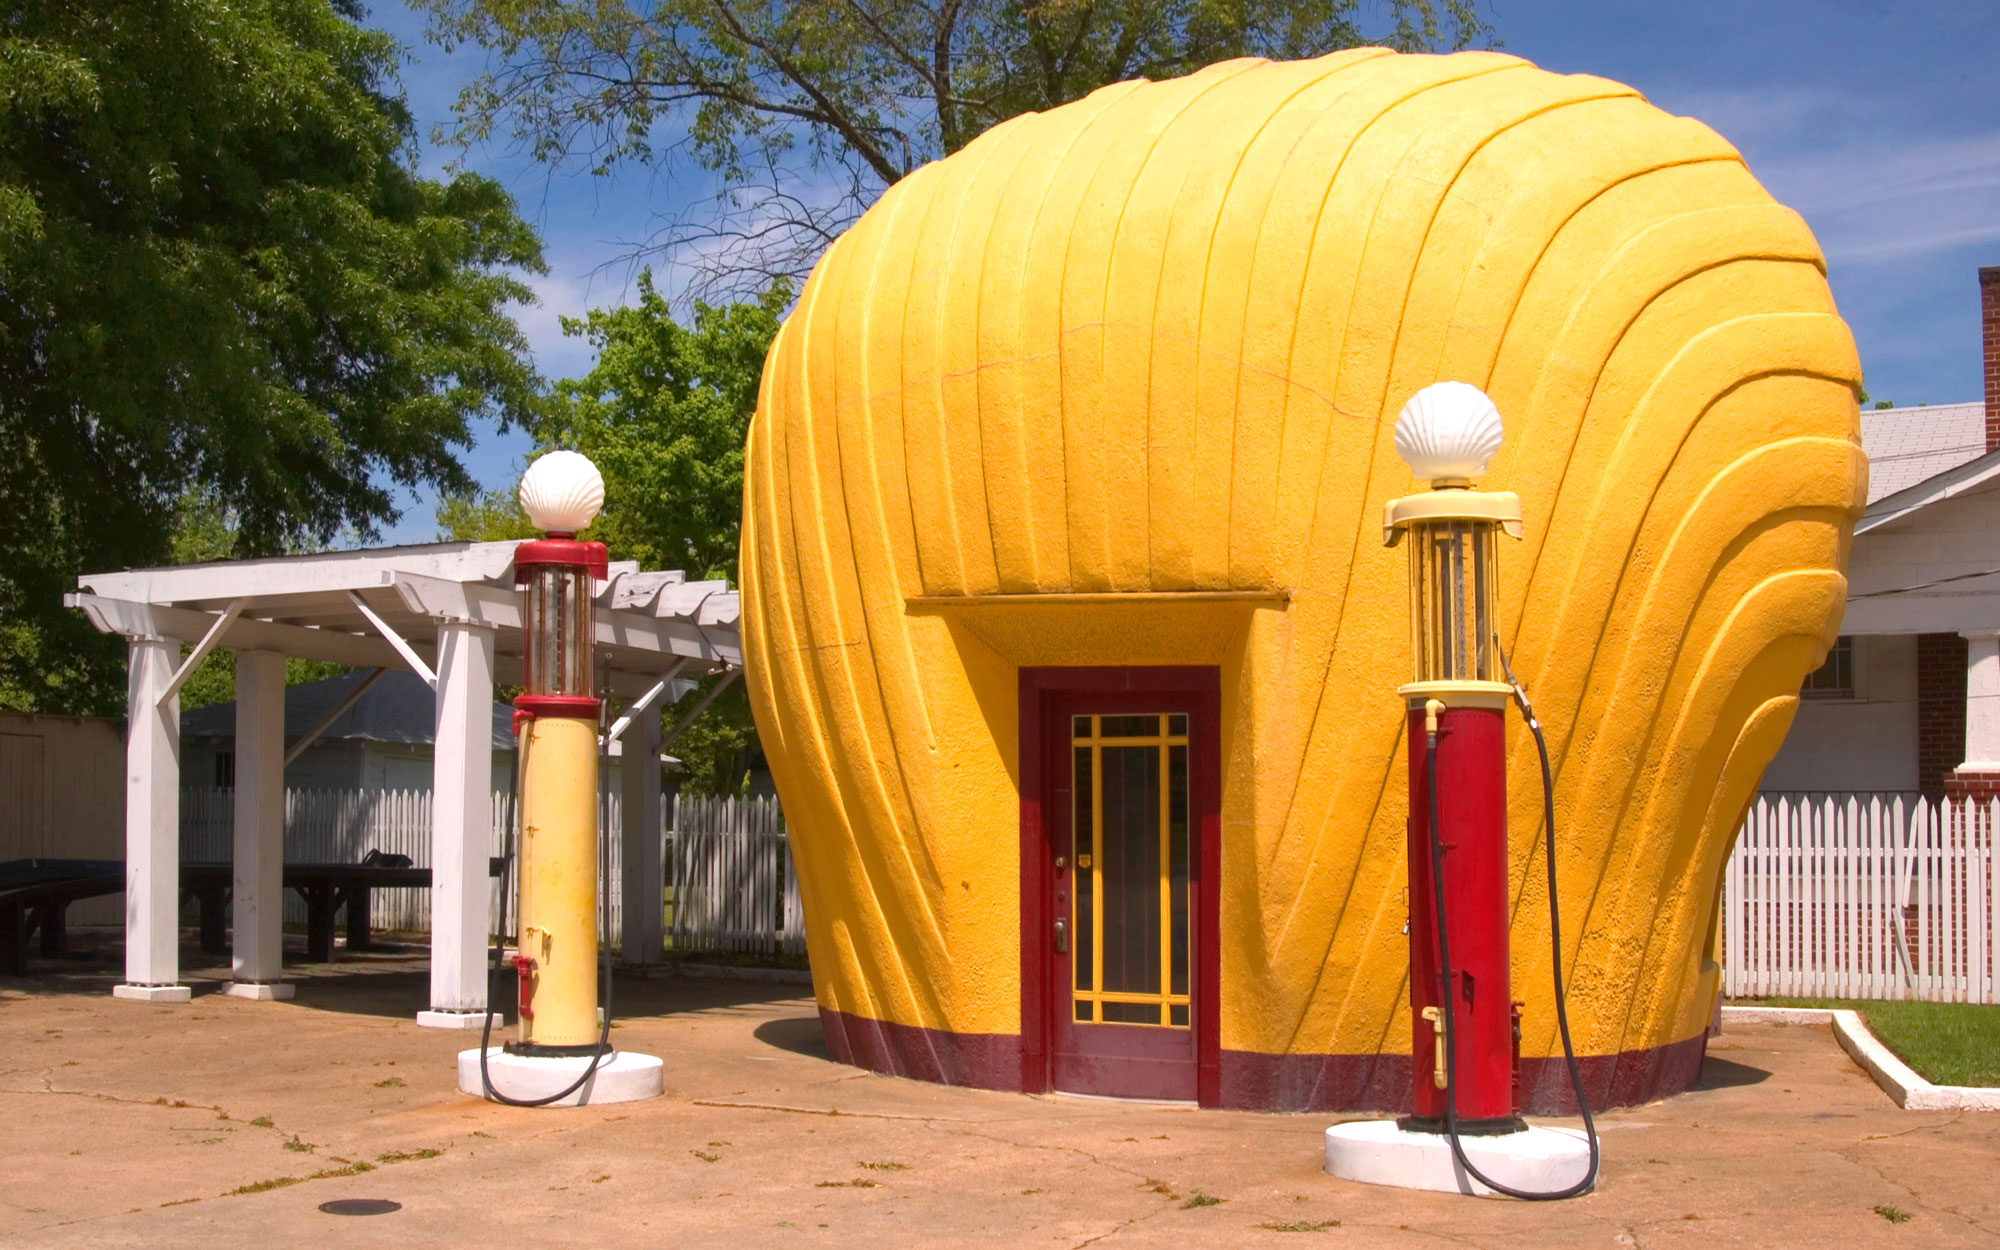 Weirdest Roadside Attractions: North Carolina: The last Shell Oil Clamshell station